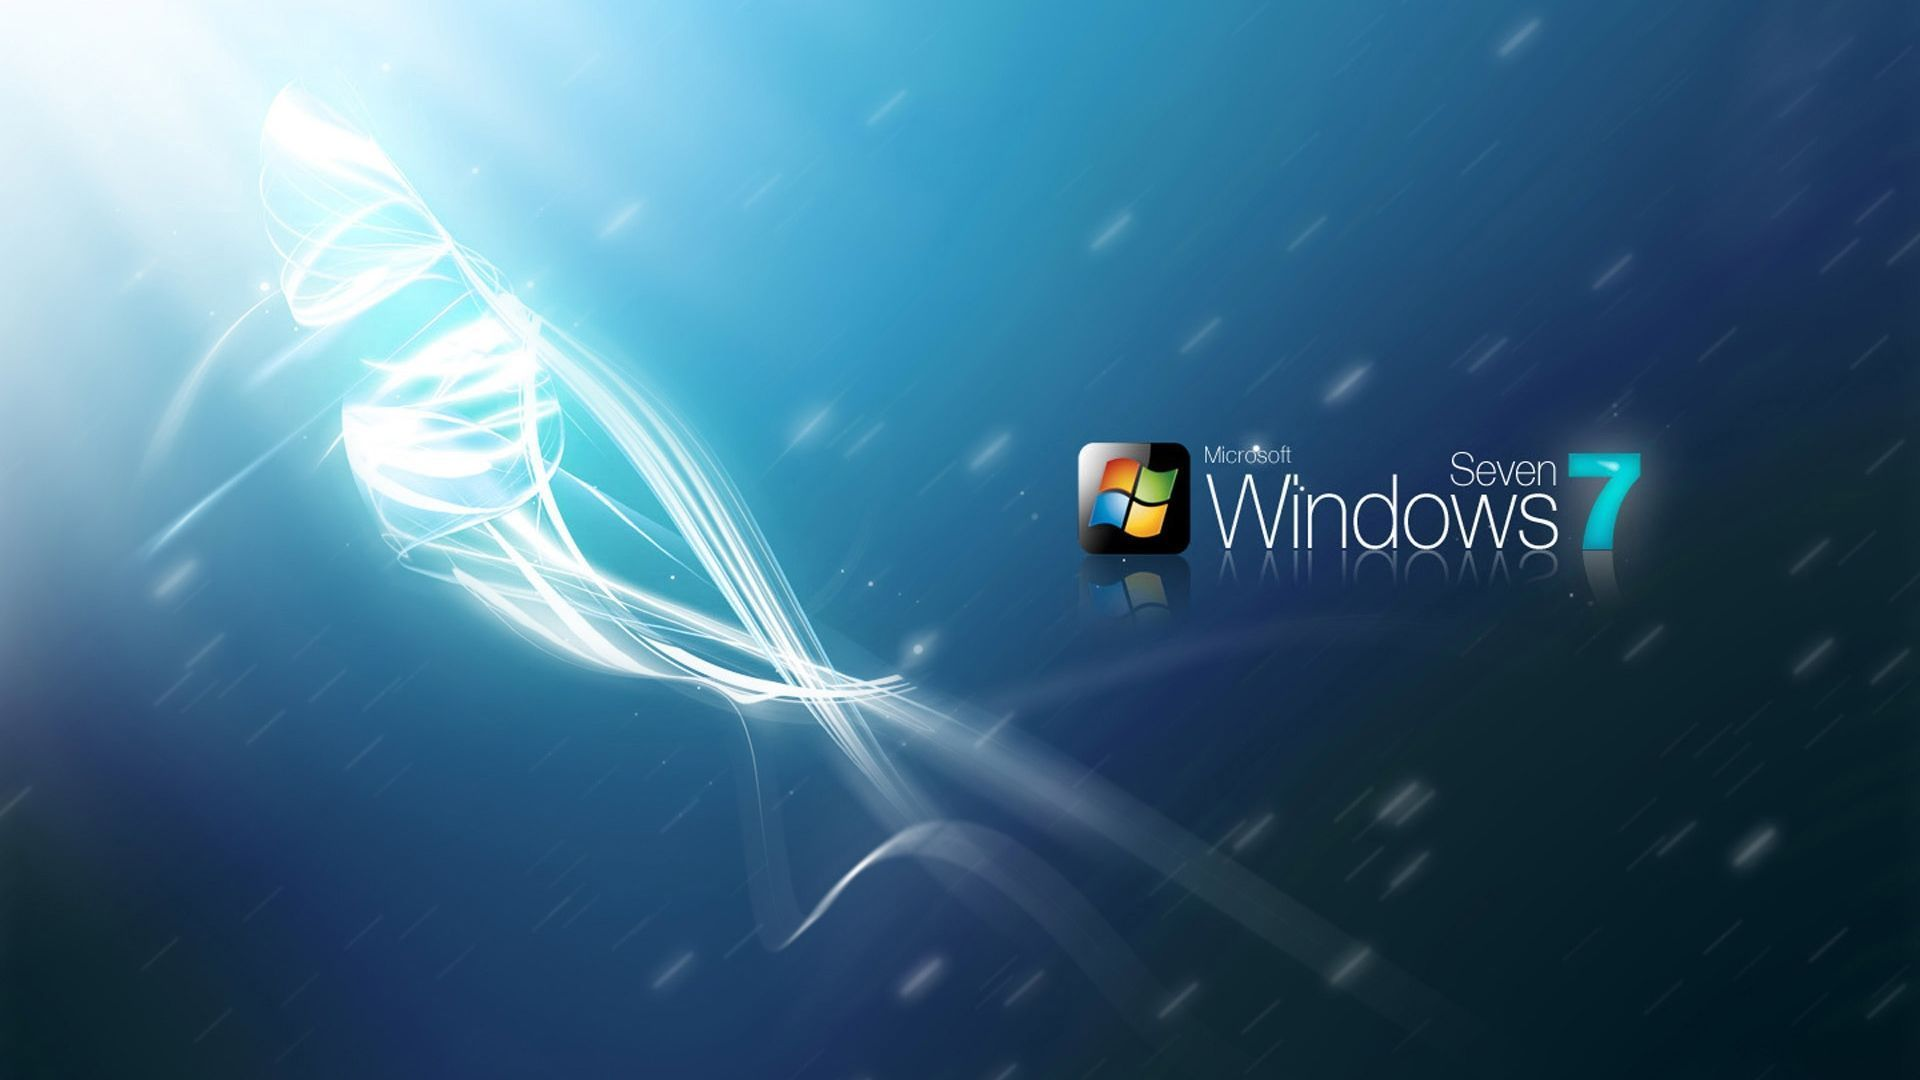 windows 7 ultimate hd wallpaper hd wallpaper of